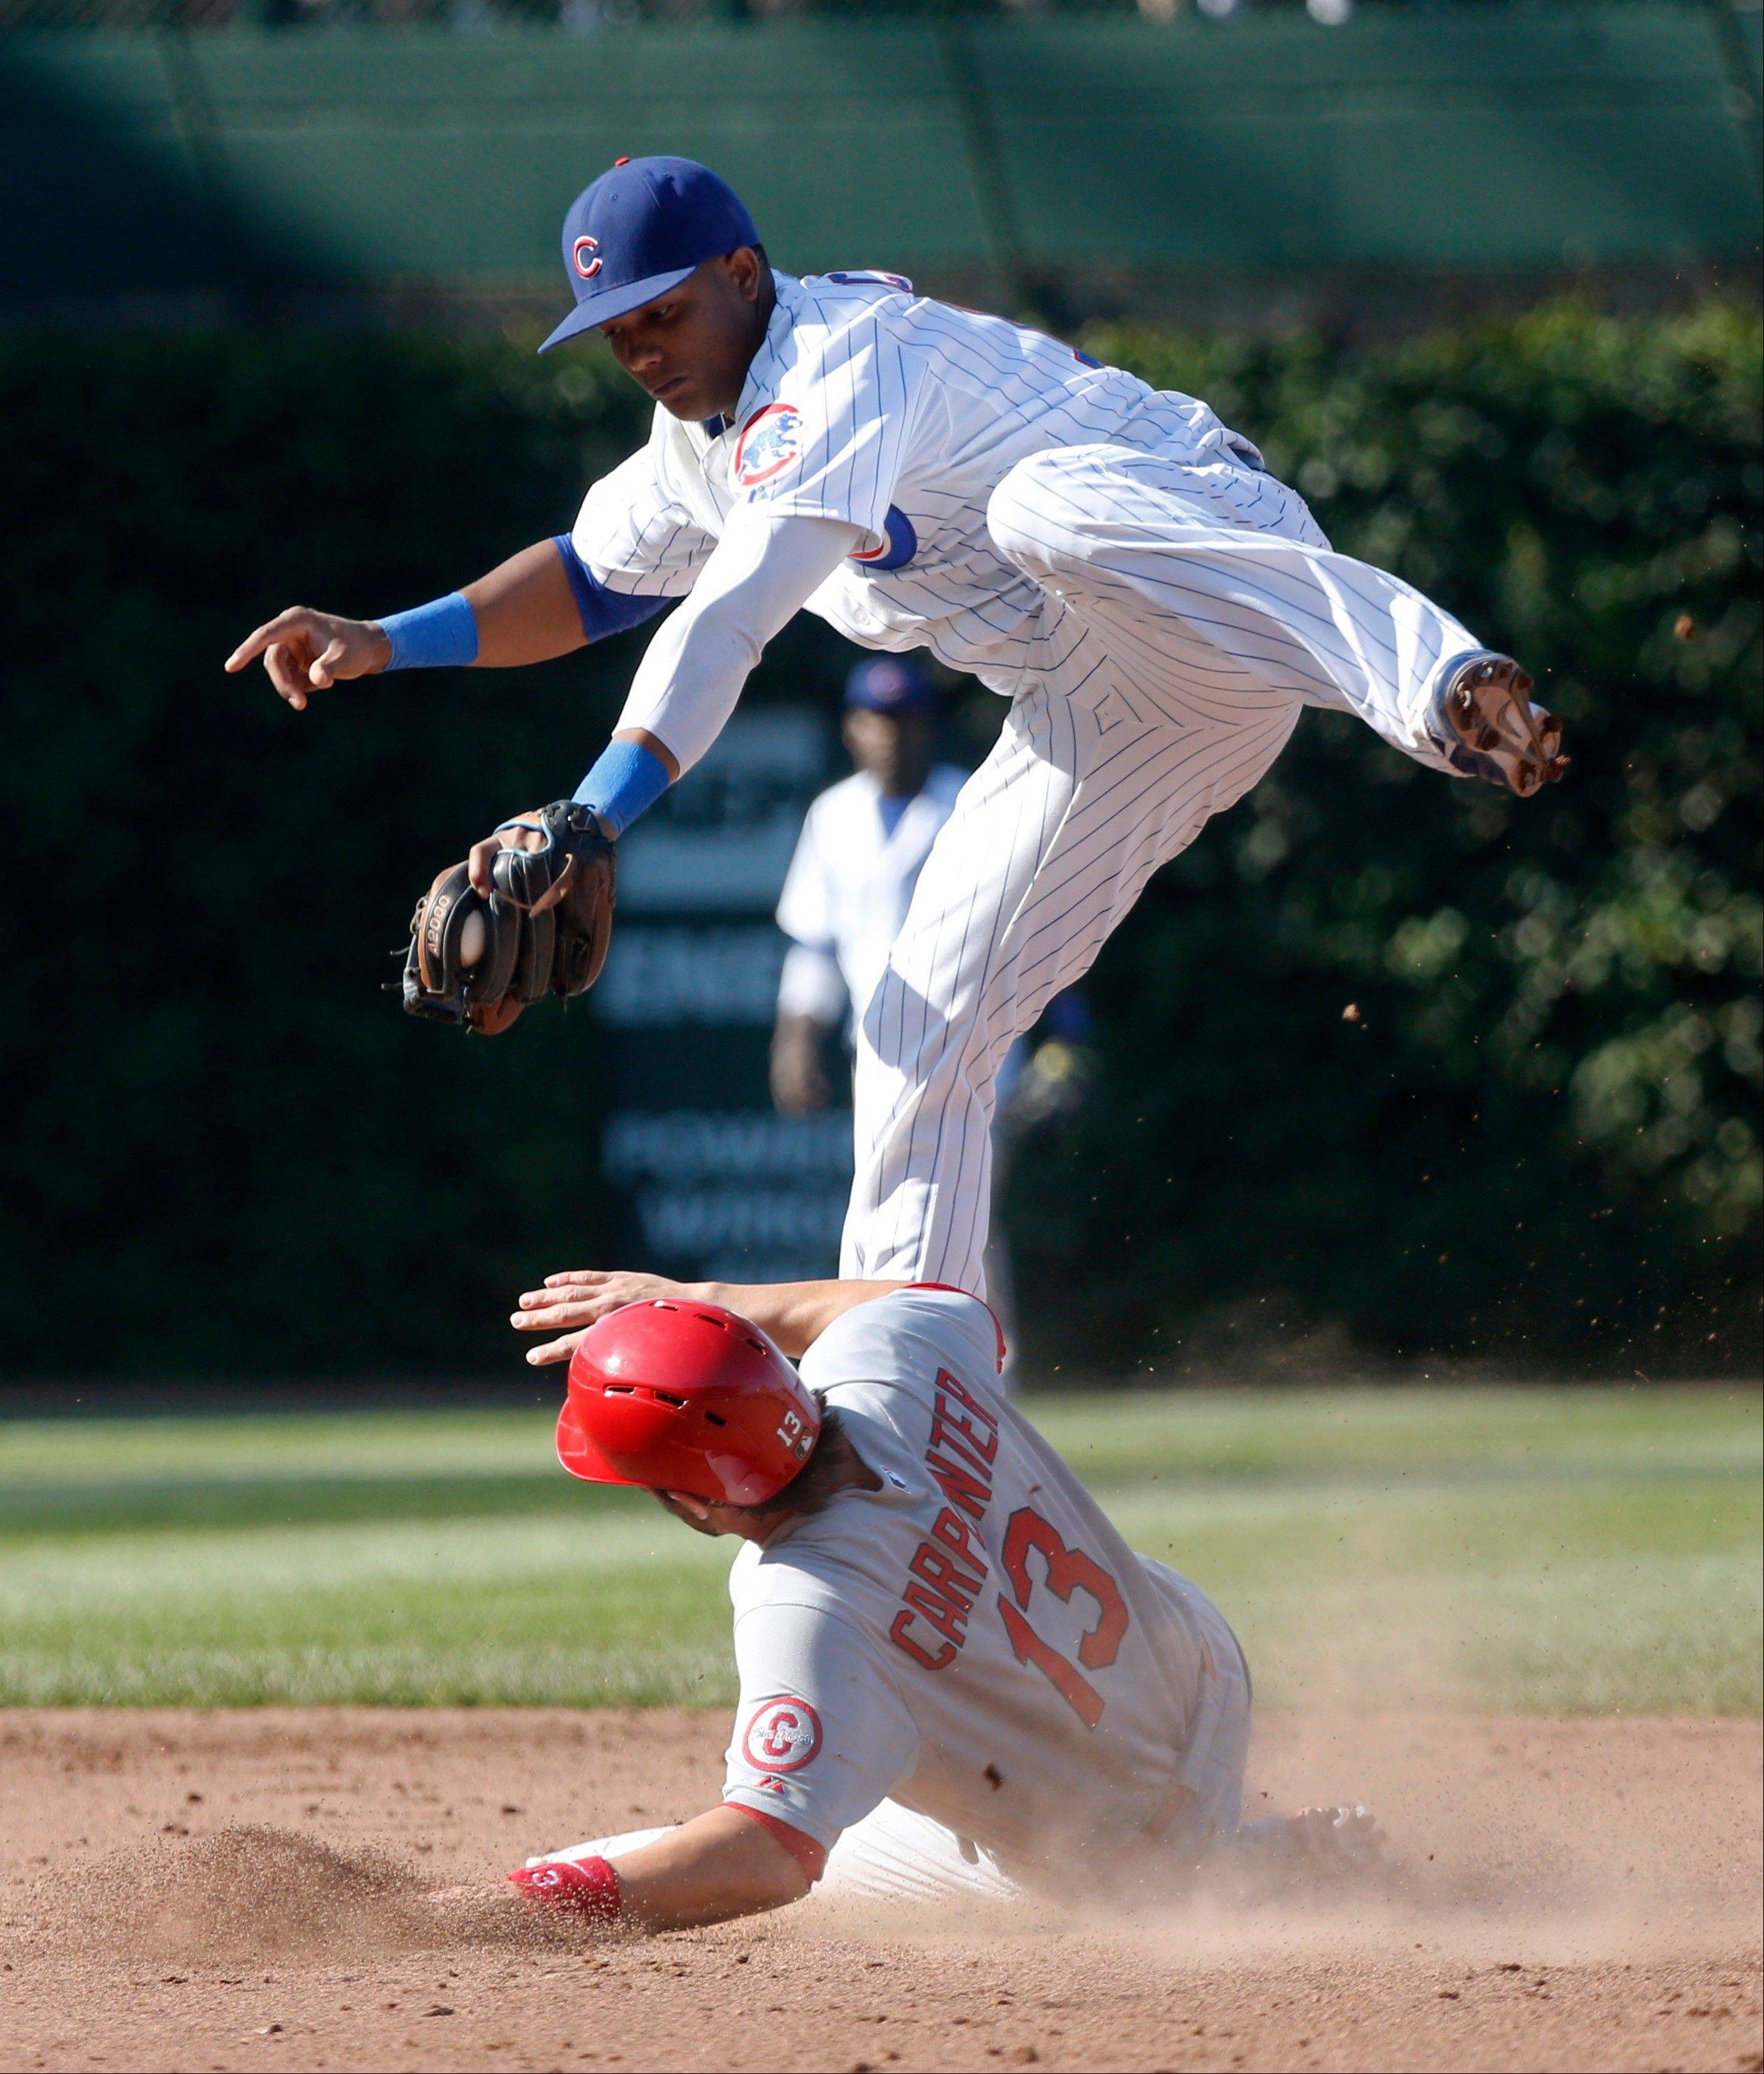 Cubs� shortstop Starlin Castro takes a high throw from second baseman Darwin Barney off a ball hit by St. Louis Cardinals� Jon Jay and forces out Matt Carpenter at second during Friday�s game at Wrigley Field. The Cubs won 7-0.